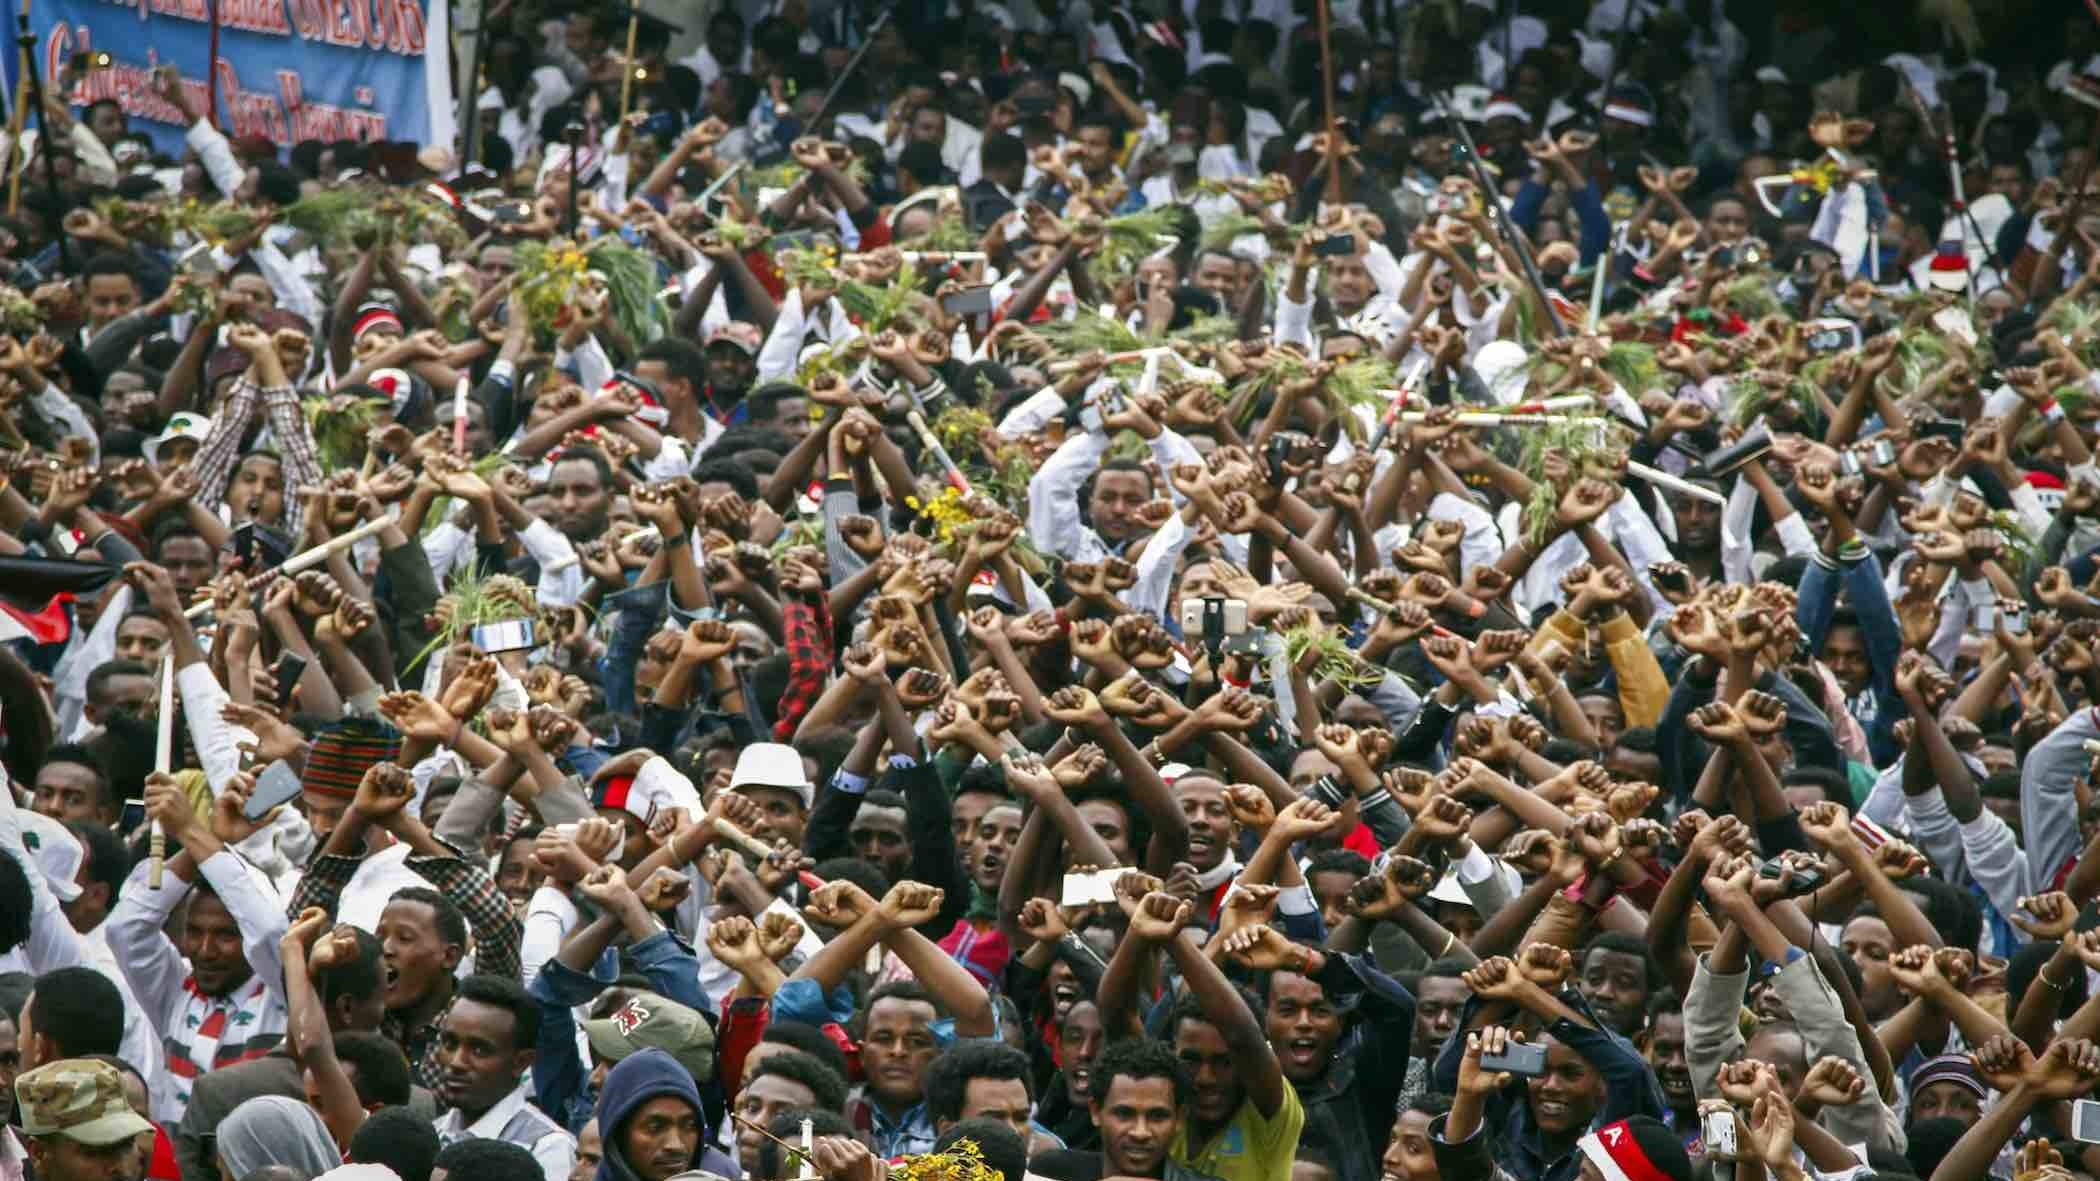 Ethiopia's massive protests are getting desperate - and dangerous